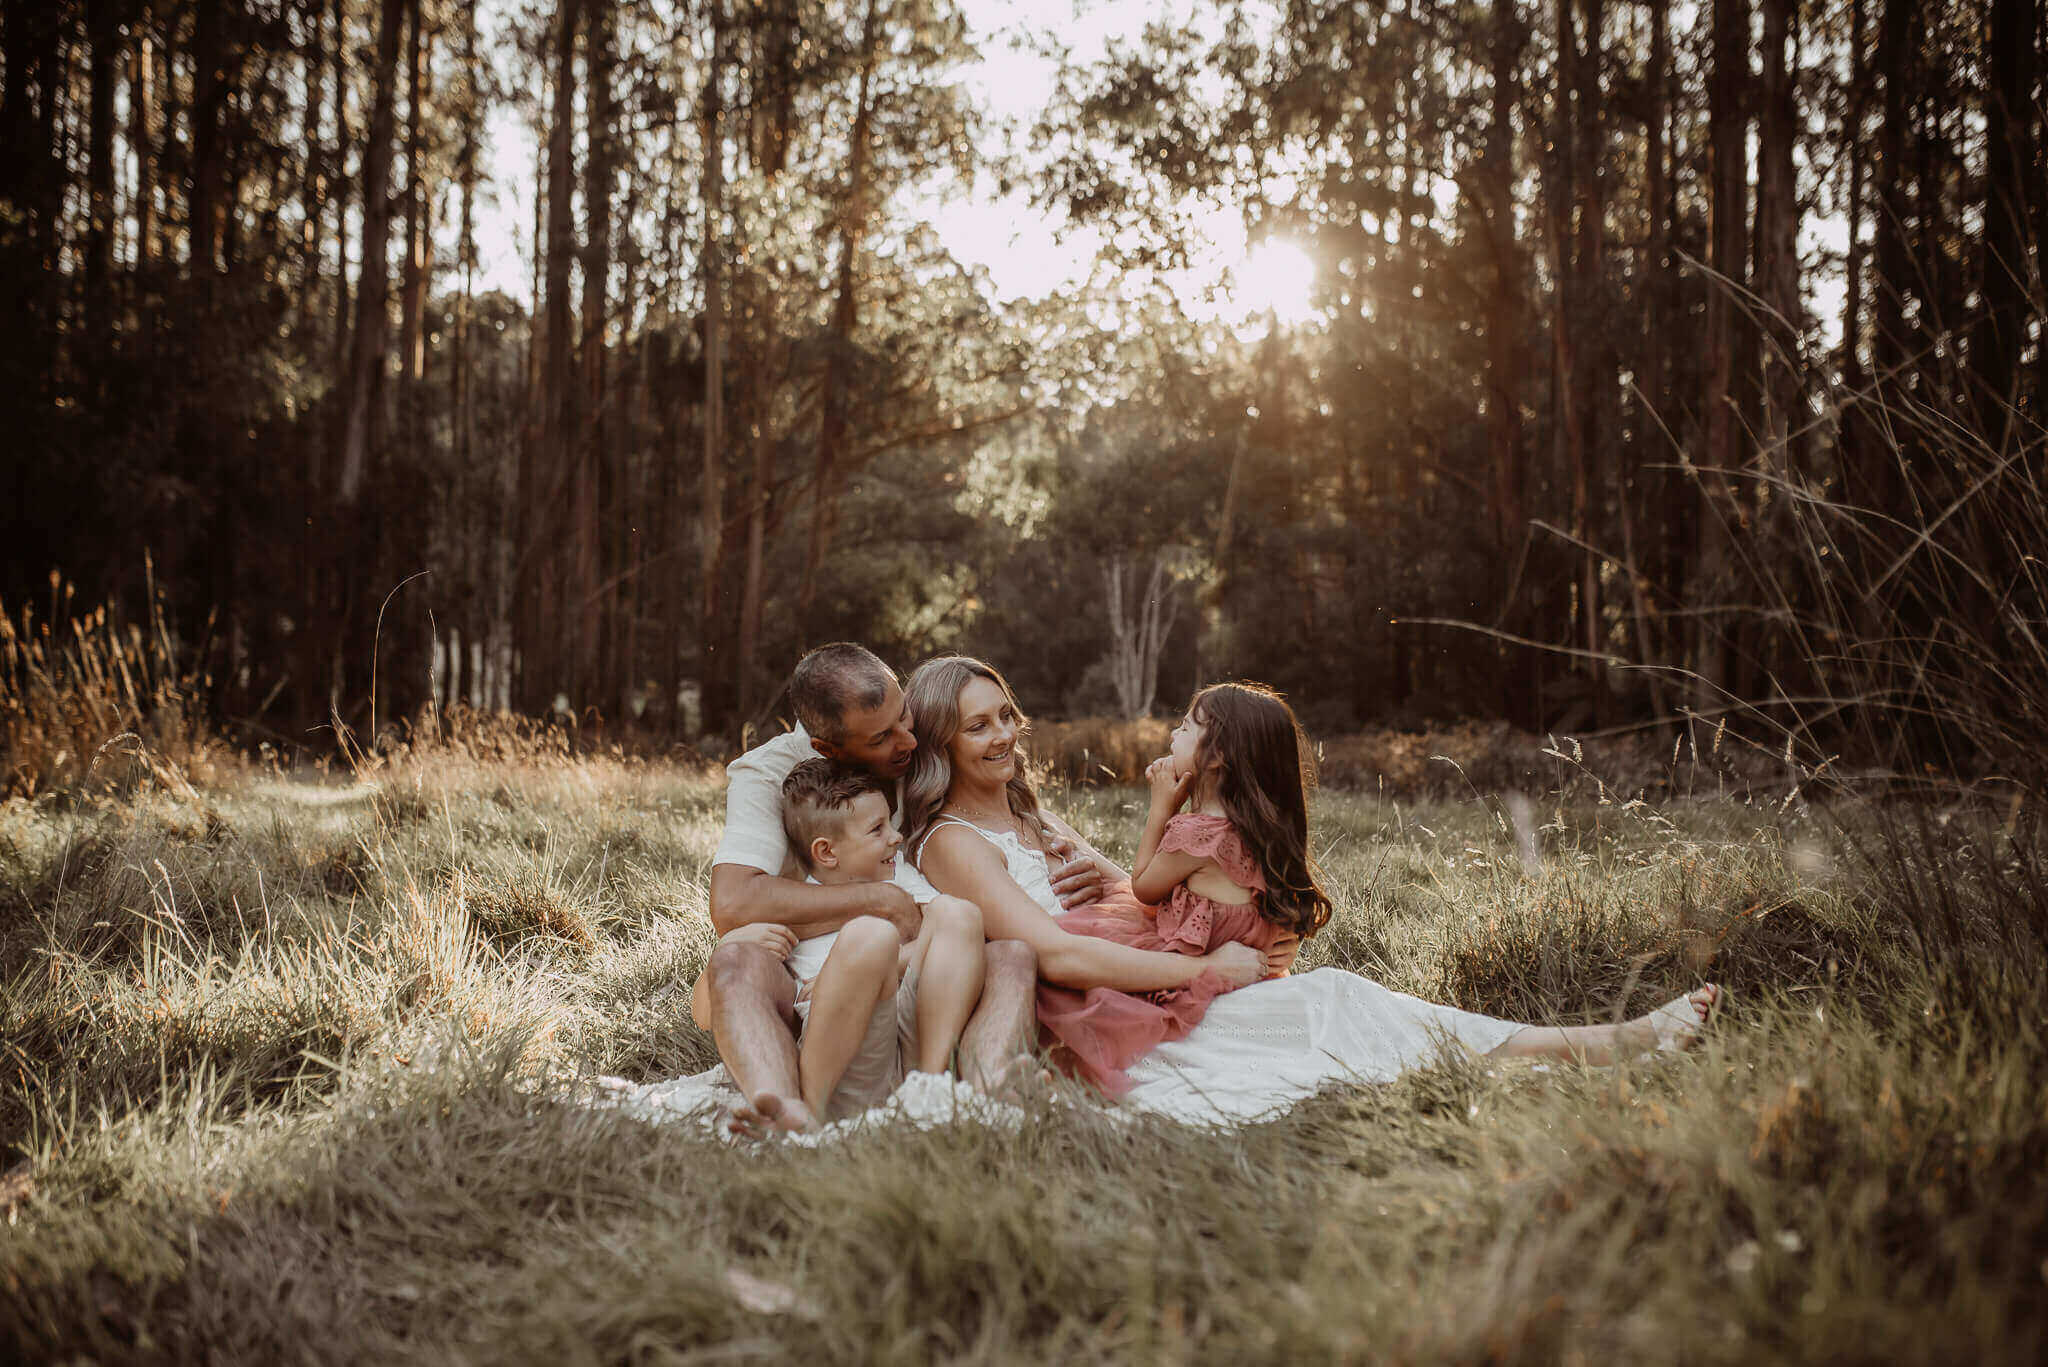 Family Photos Outdoor In The Woods